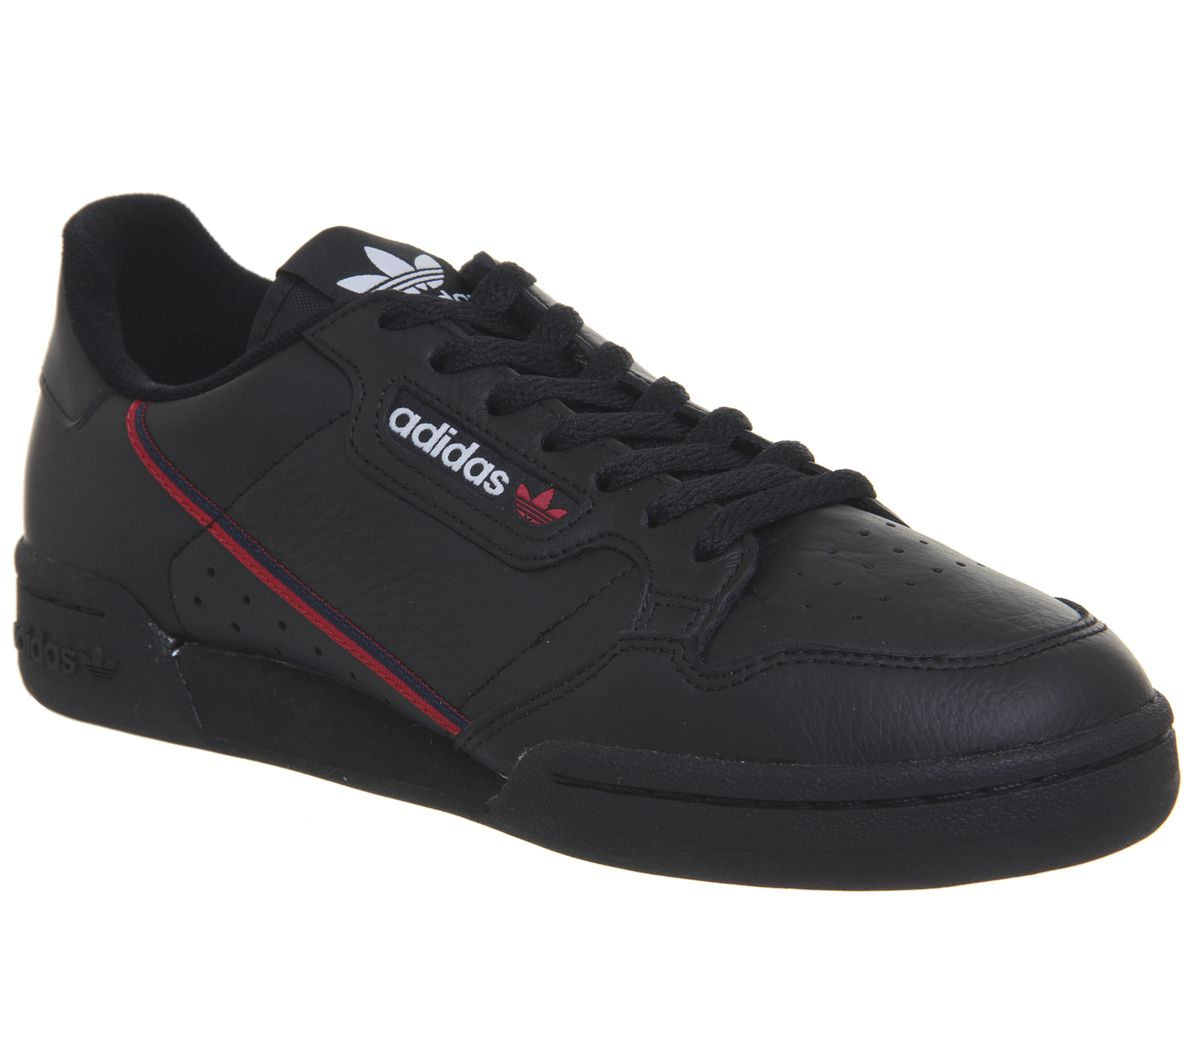 brand new 6cdc0 9e31d adidas Continental 80s Trainers Core Black Scarlet Collegiate Navy ...